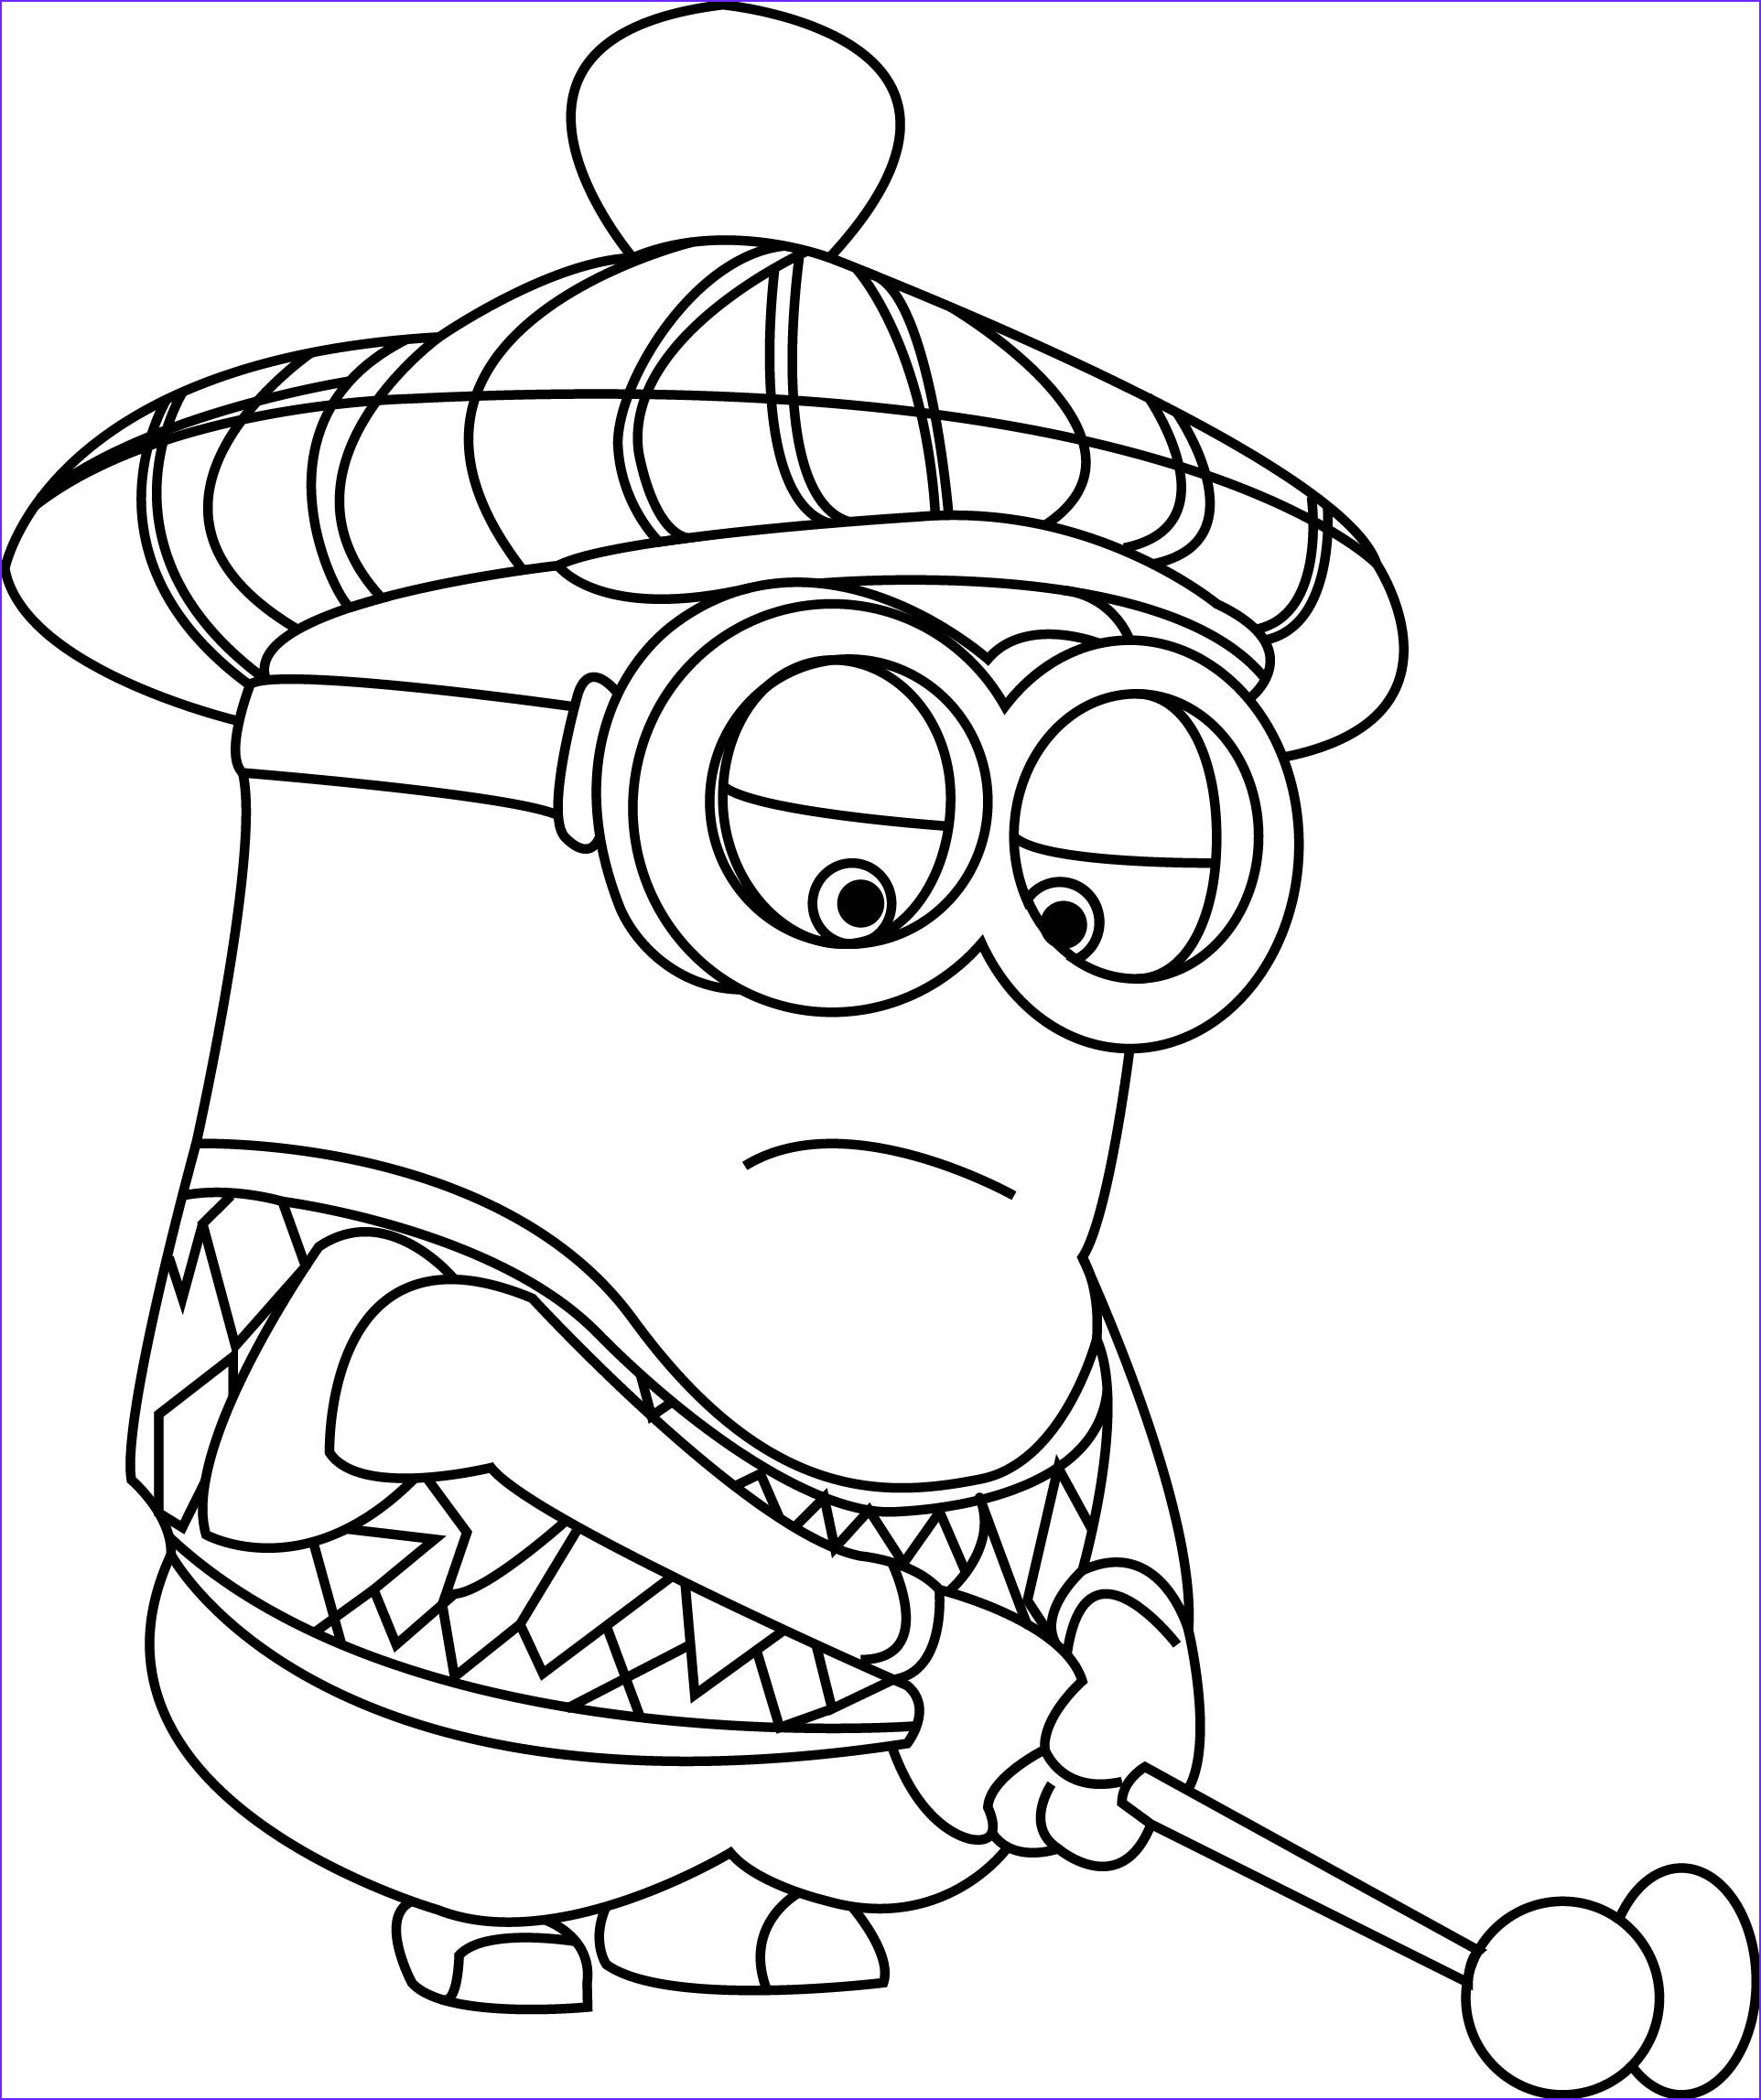 Minion Coloring Sheets Best Of Gallery Despicable Me Golfer Minion Coloring Pages